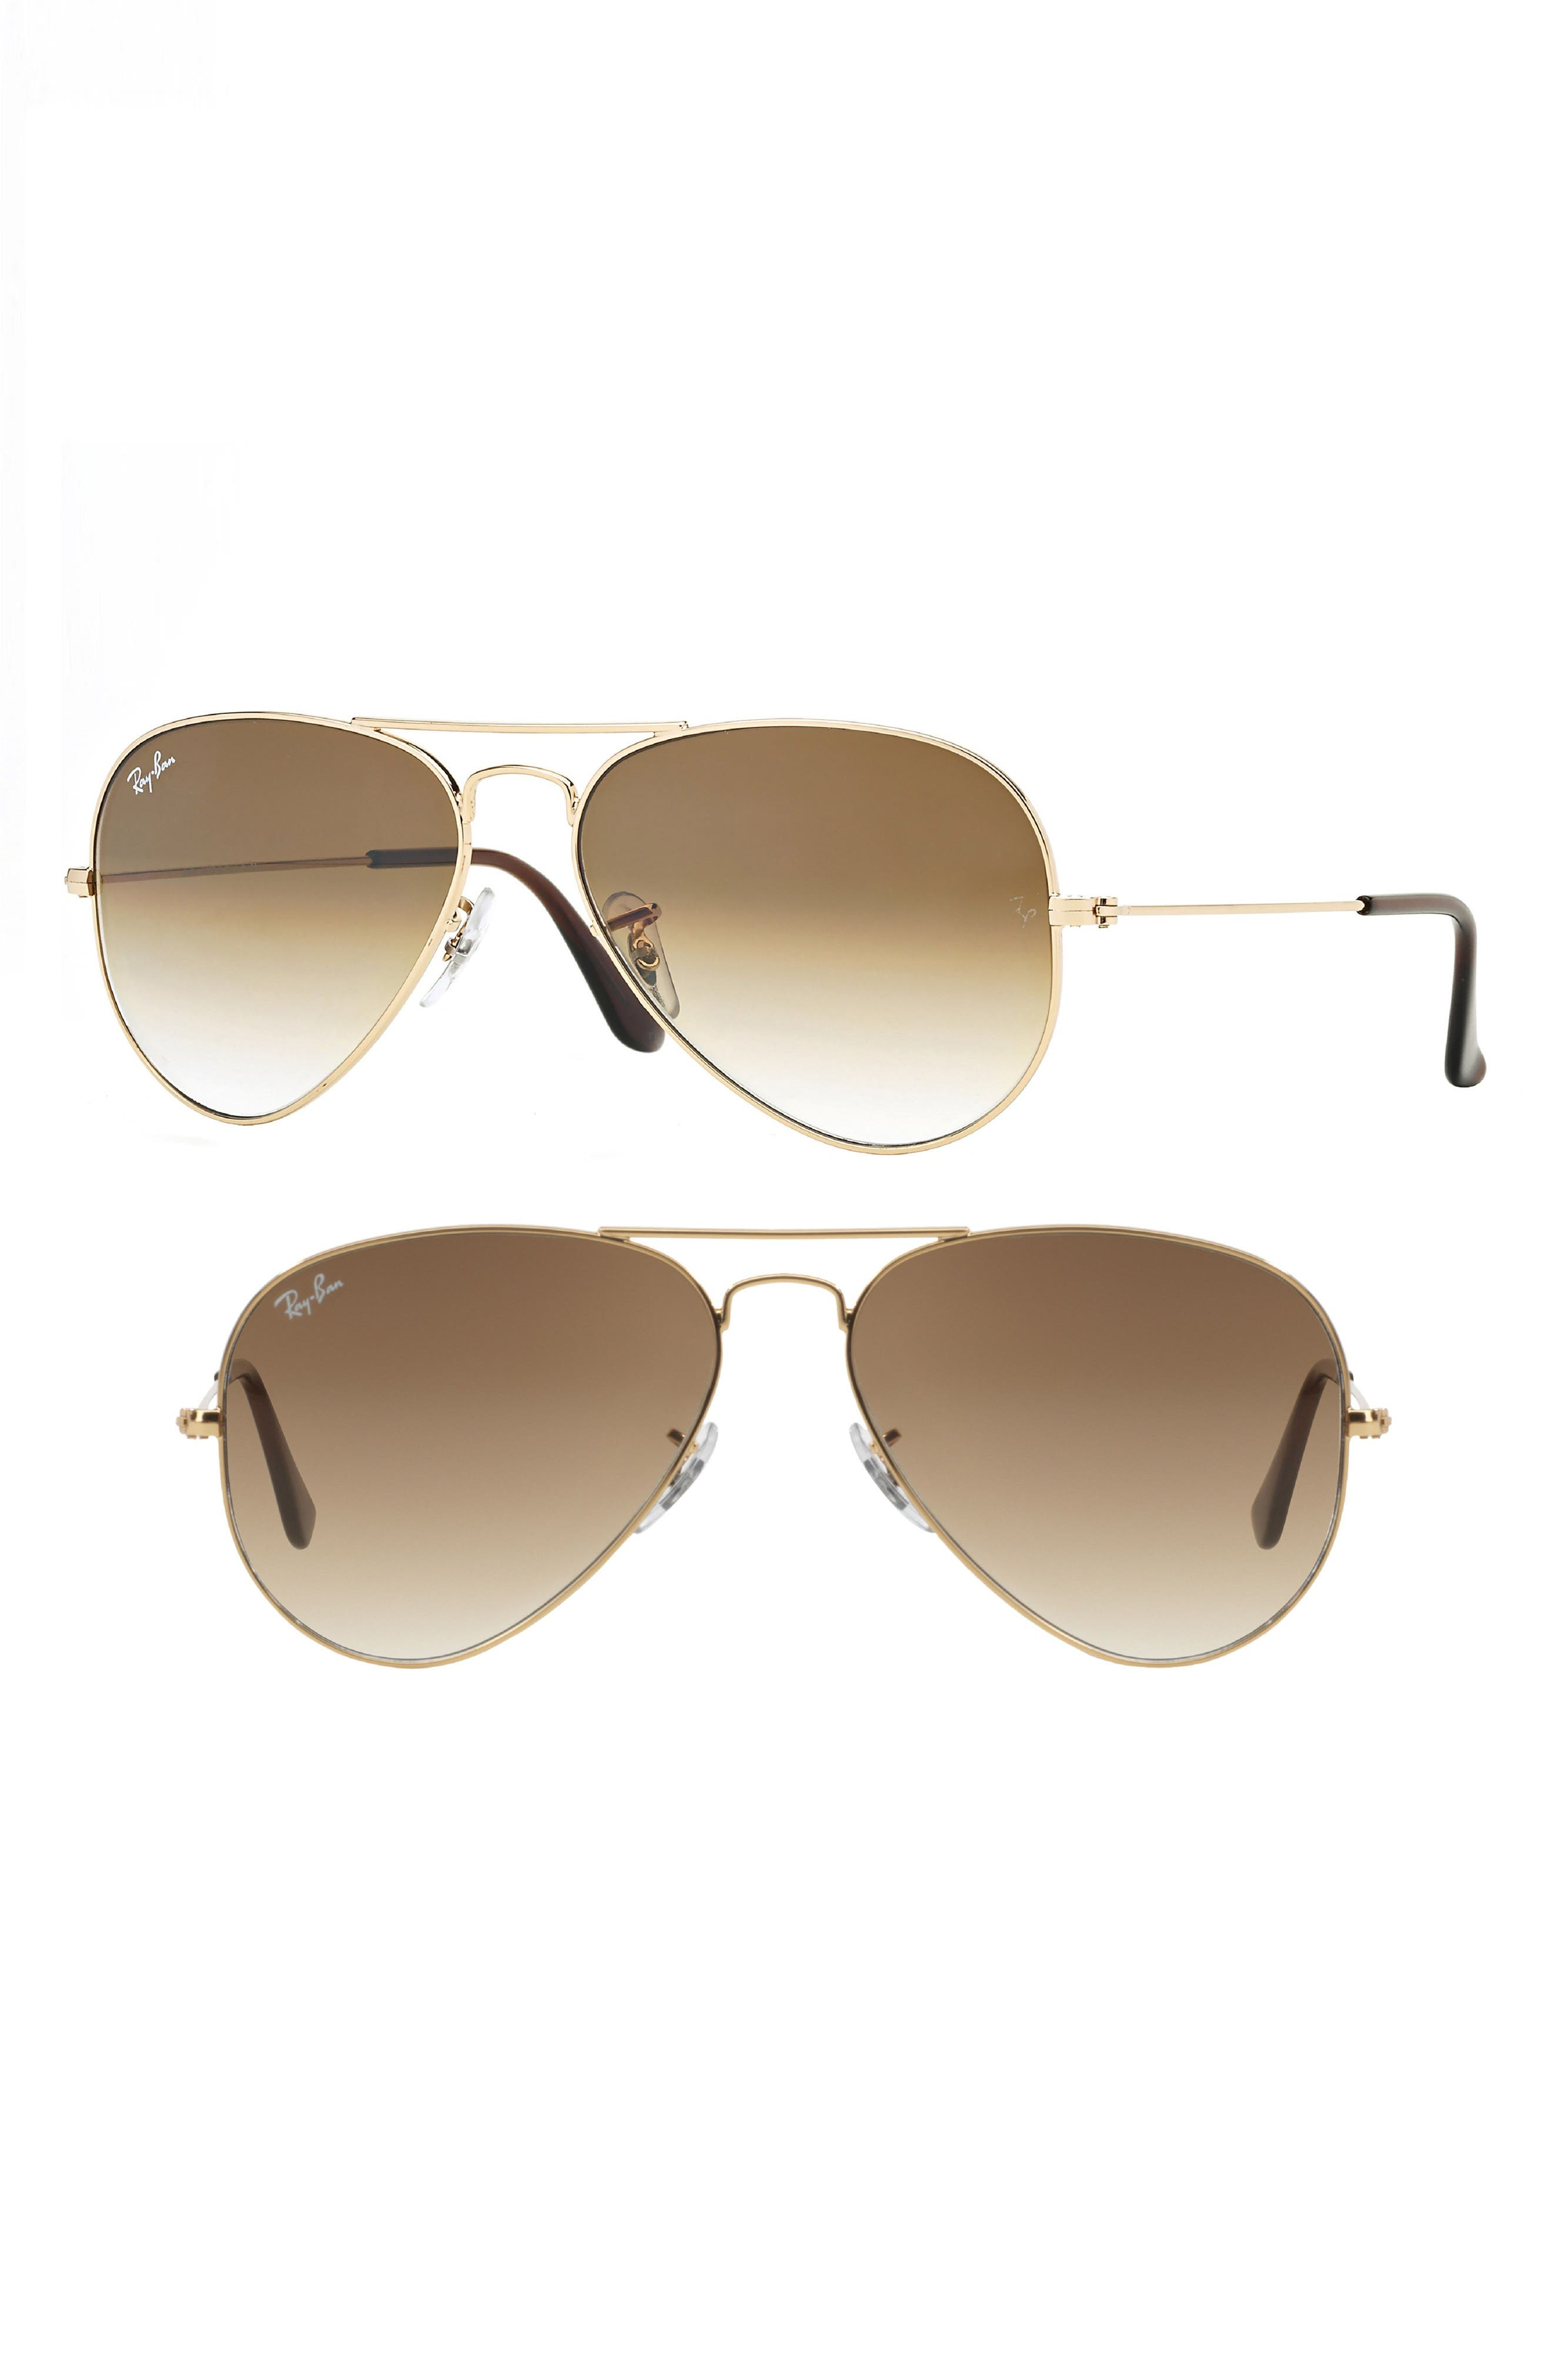 842809eee9 Versace Ray Ban Style Sunglasses « One More Soul